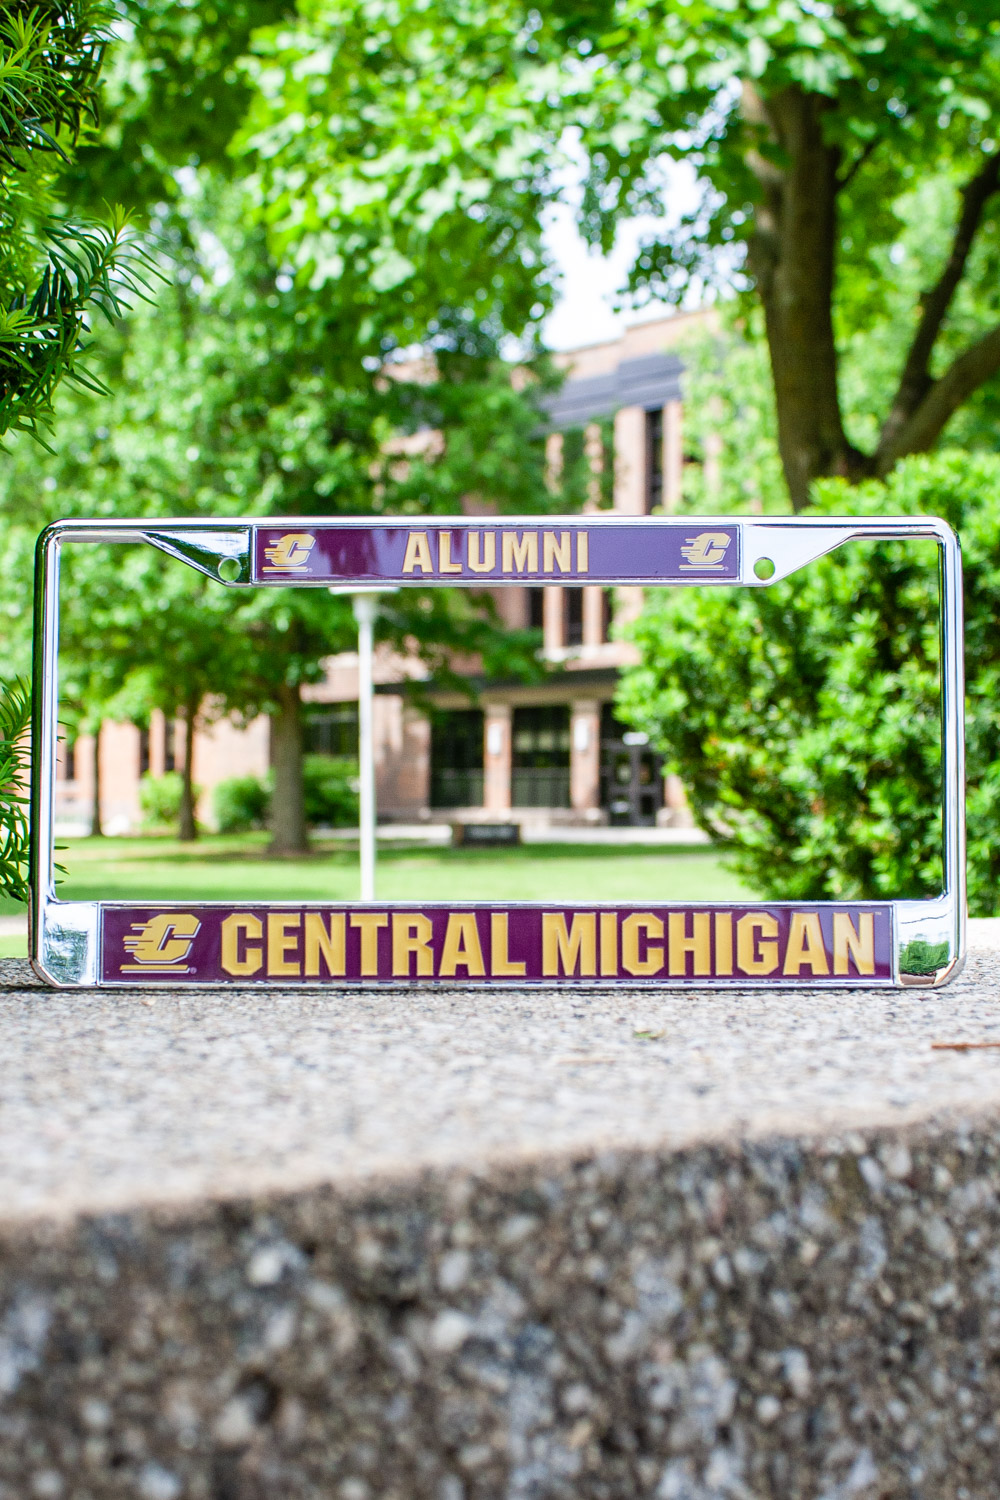 Central Michigan Alumni Metal License Plate Frame (SKU 5041222898)